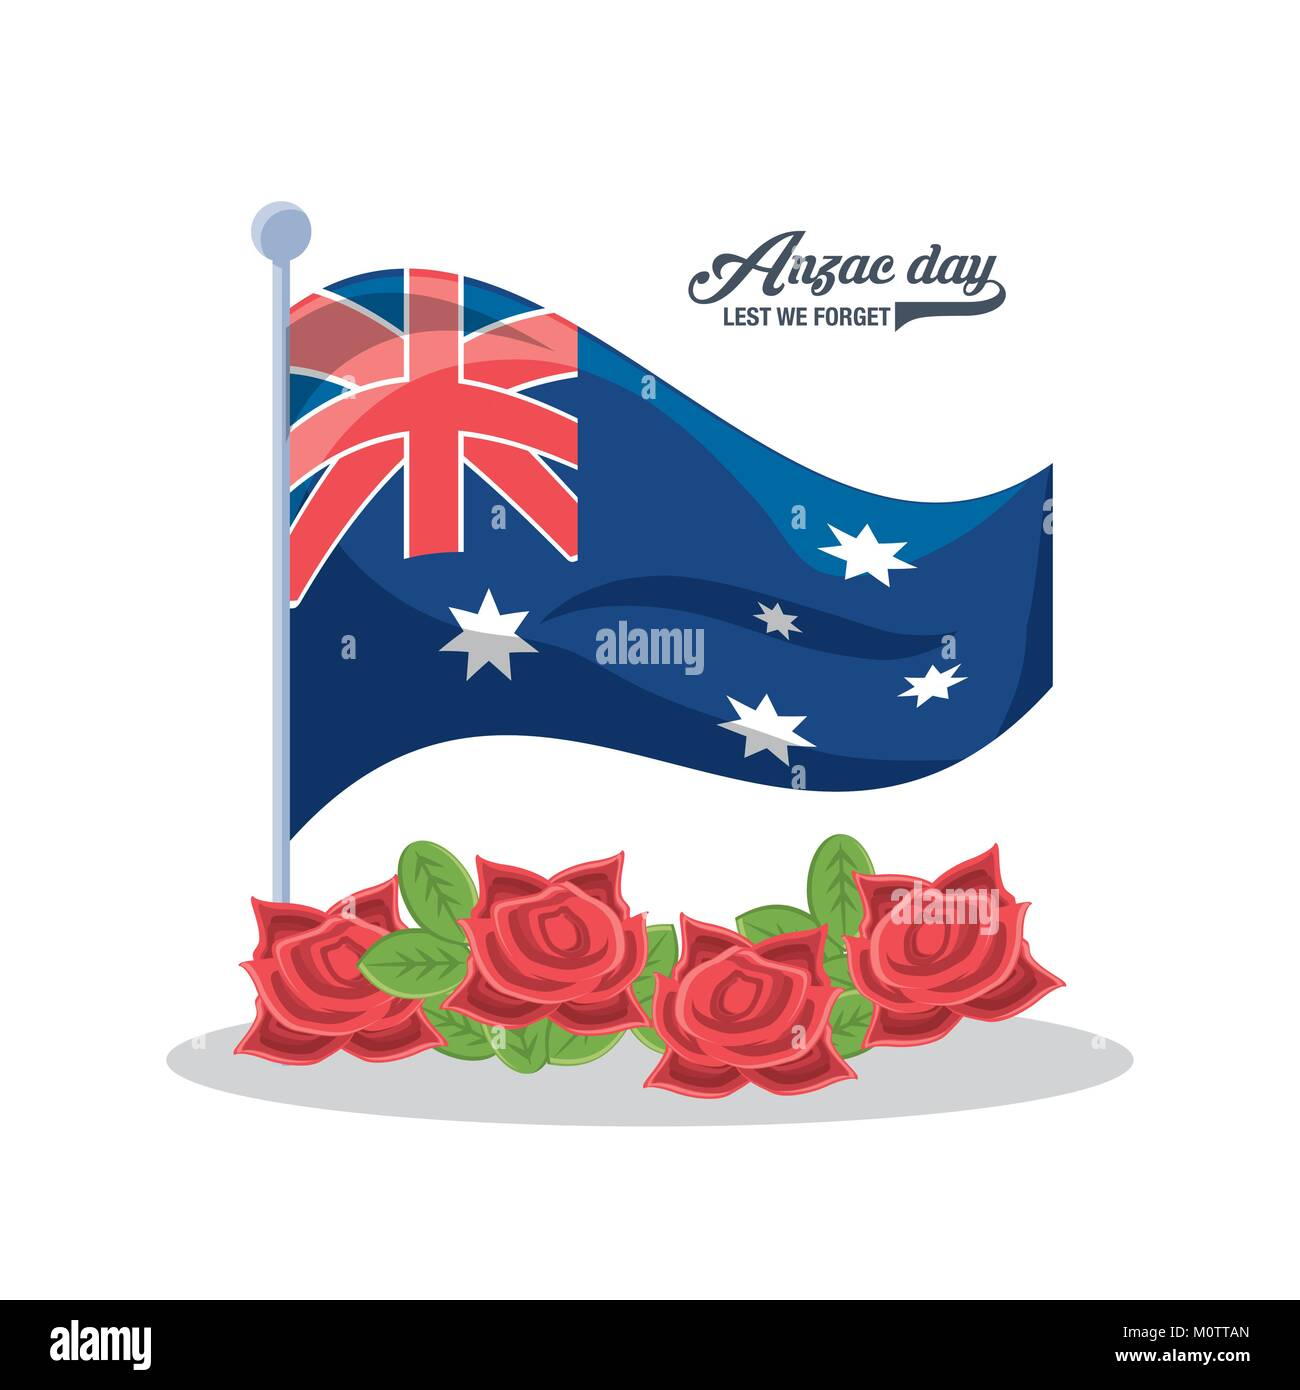 Lest We Forget Australia New Zealand High Resolution Stock Photography And Images Alamy